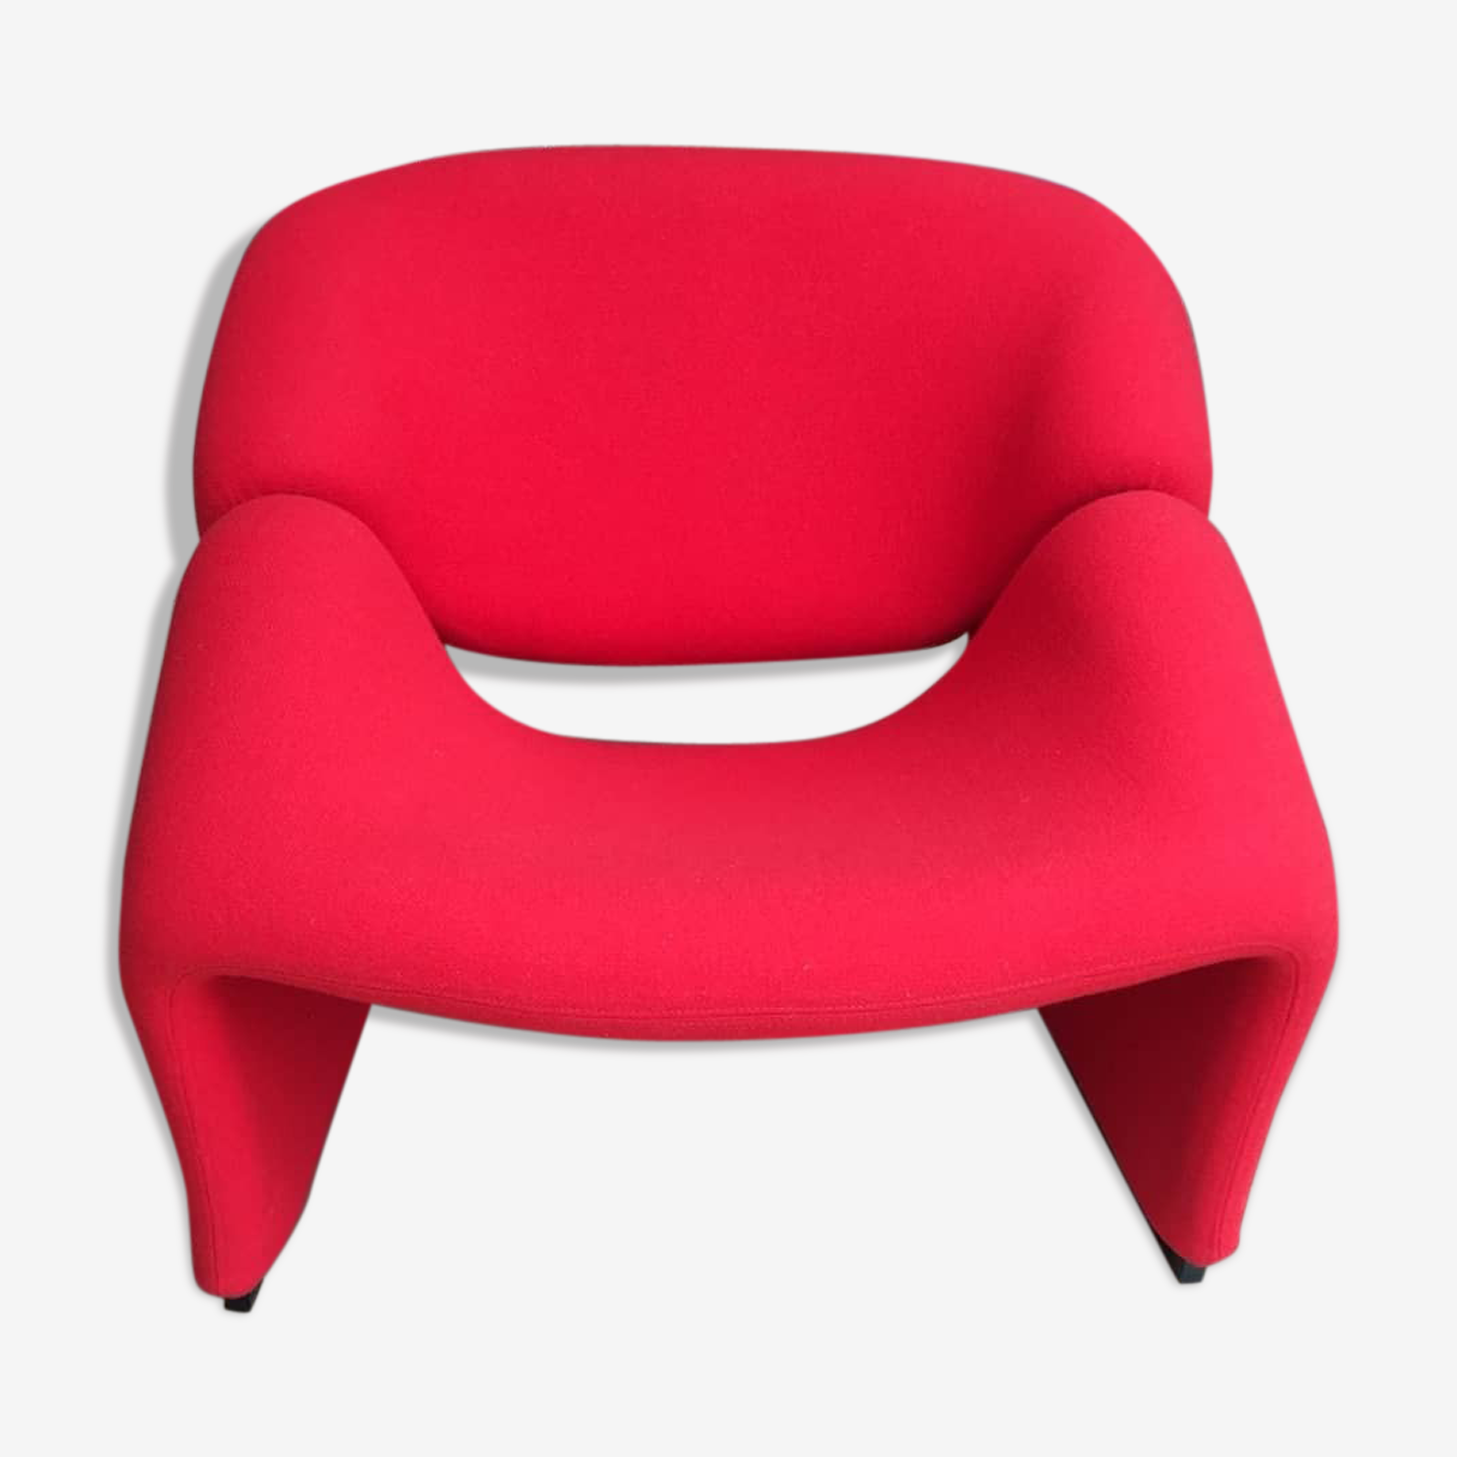 Red groovy lounge armchair by Pierre Paulin for Artifort